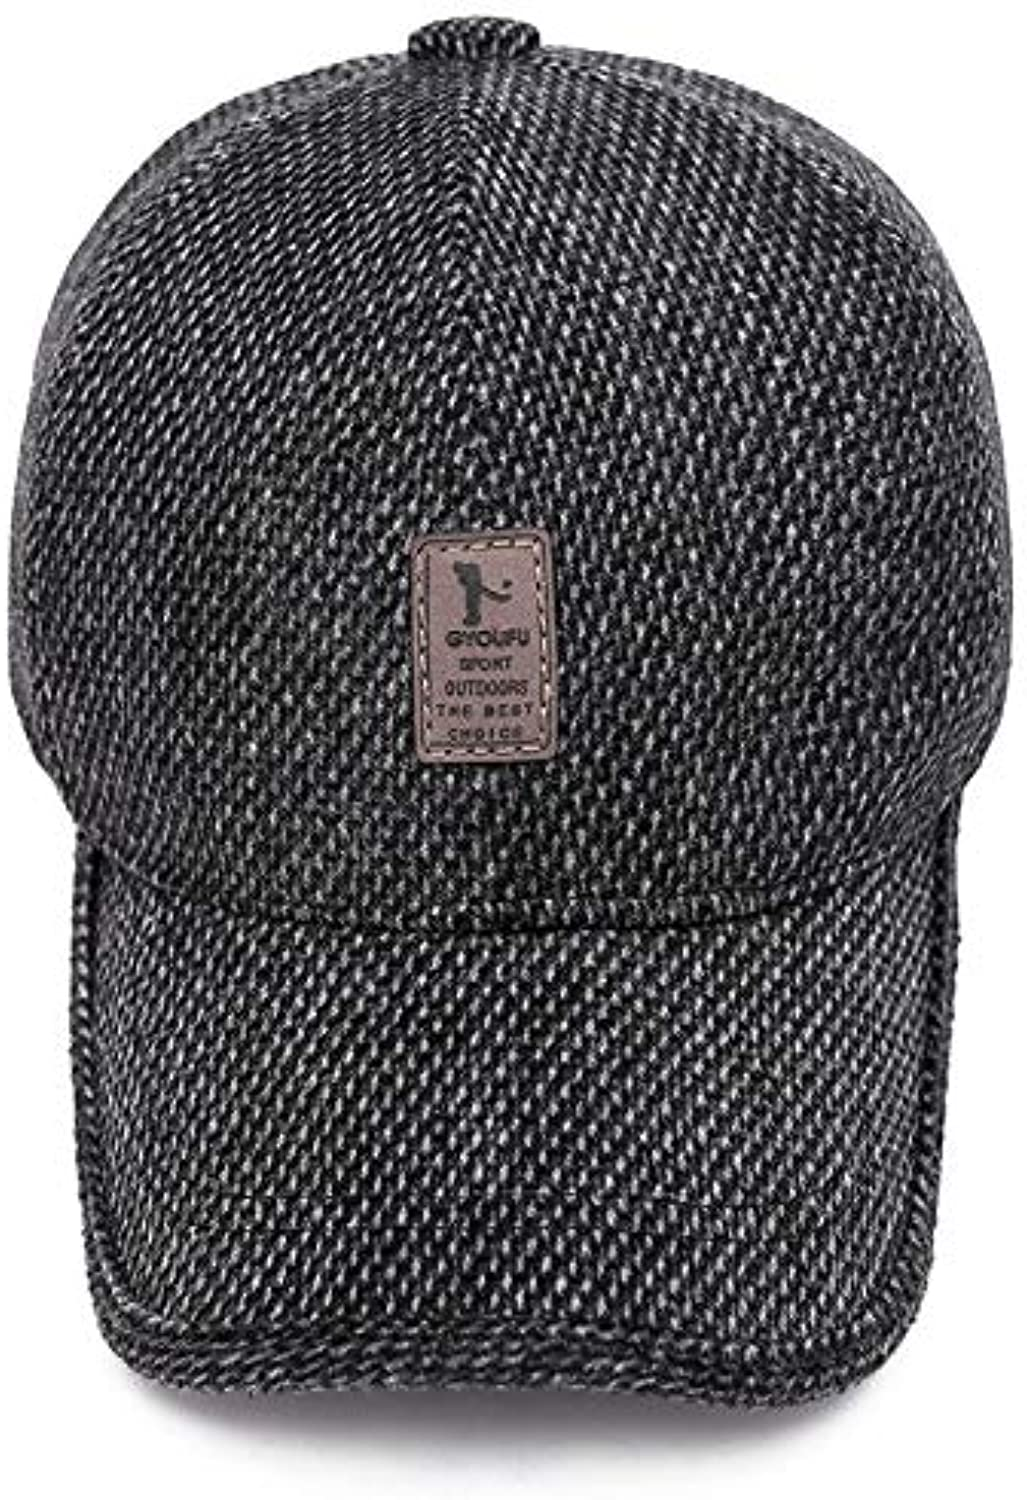 AAMOUSE Men's Winterbaseball Caps with Ear Flaps Woolen Knitted Warm Cap Thicken Hat Male Outdoor Sports Earflaps Hats